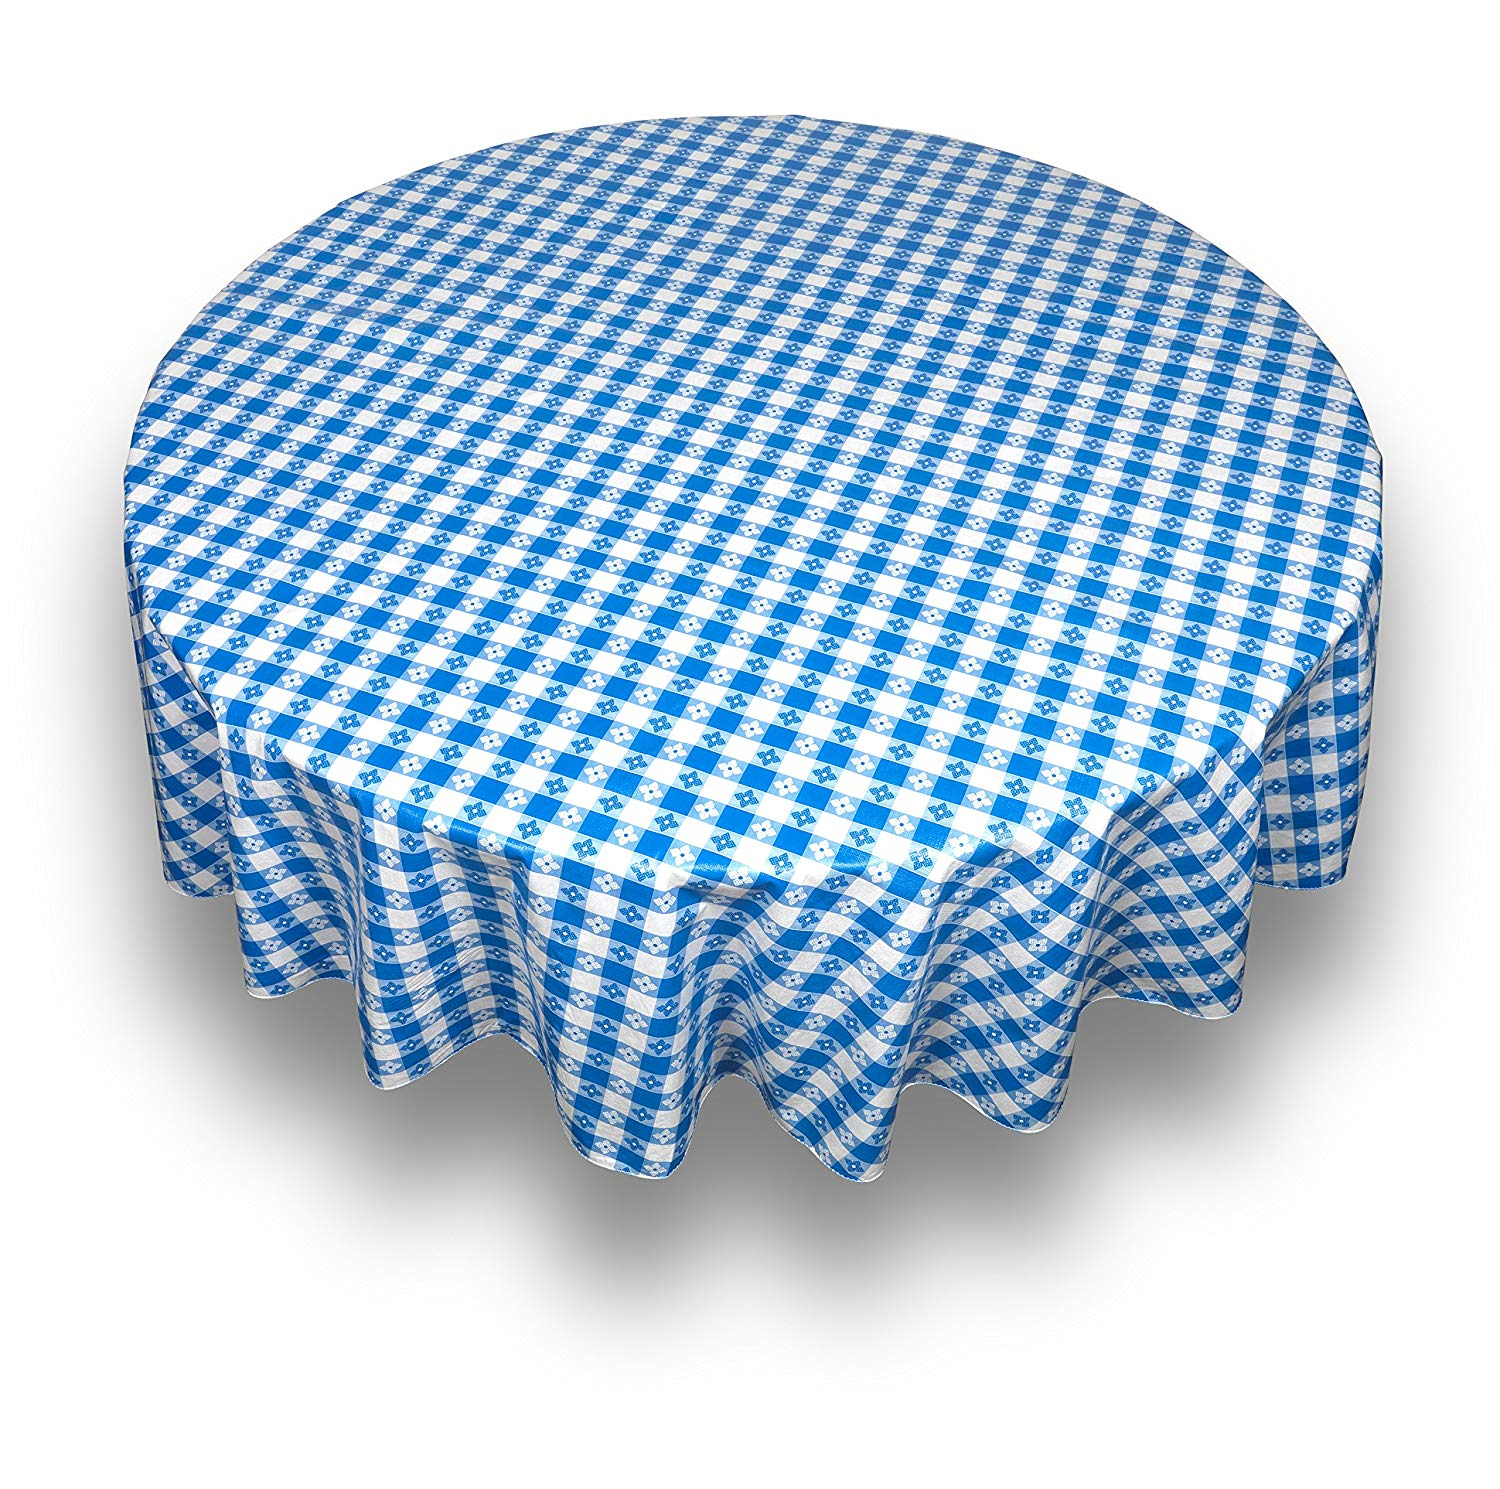 Gatherings BBQ s 108 x 54 inches Vinyl Tablecloth Toy Cubby Birthdays Holidays Red and White Checked Picnic Camping Party Supply Table Cover 12 Christmas Party Vinyl Tablecloths